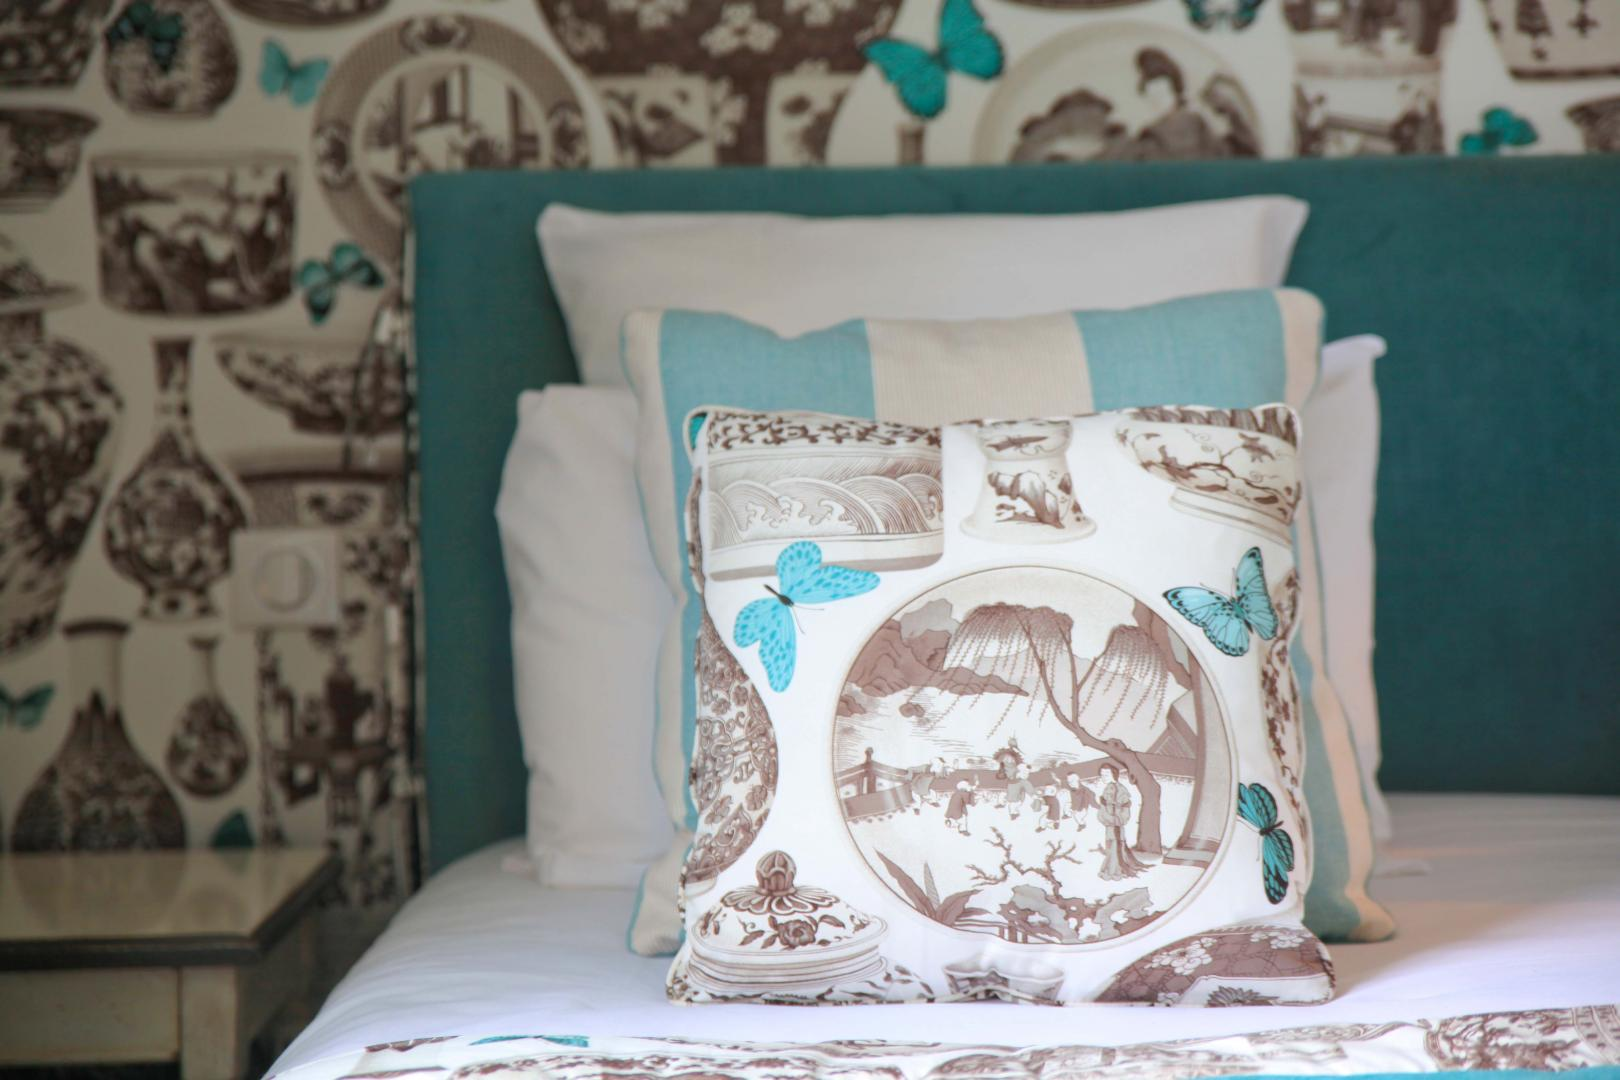 Headboards and bedspreads